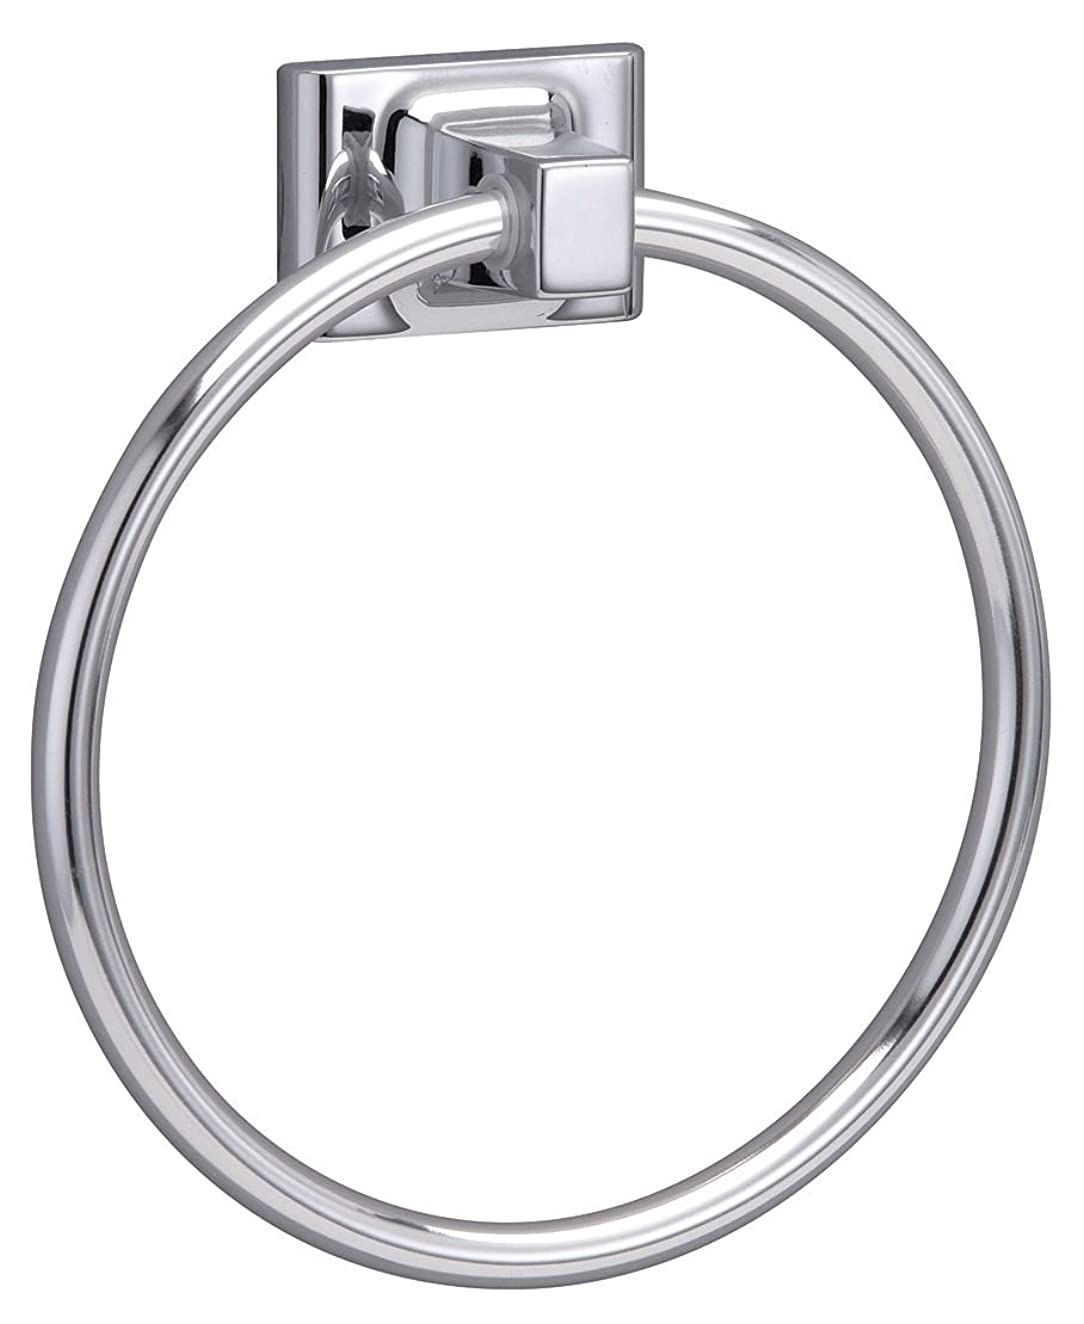 通路充電Taymor 01-9404 Sunglow Series Towel Ring, Polished Chrome